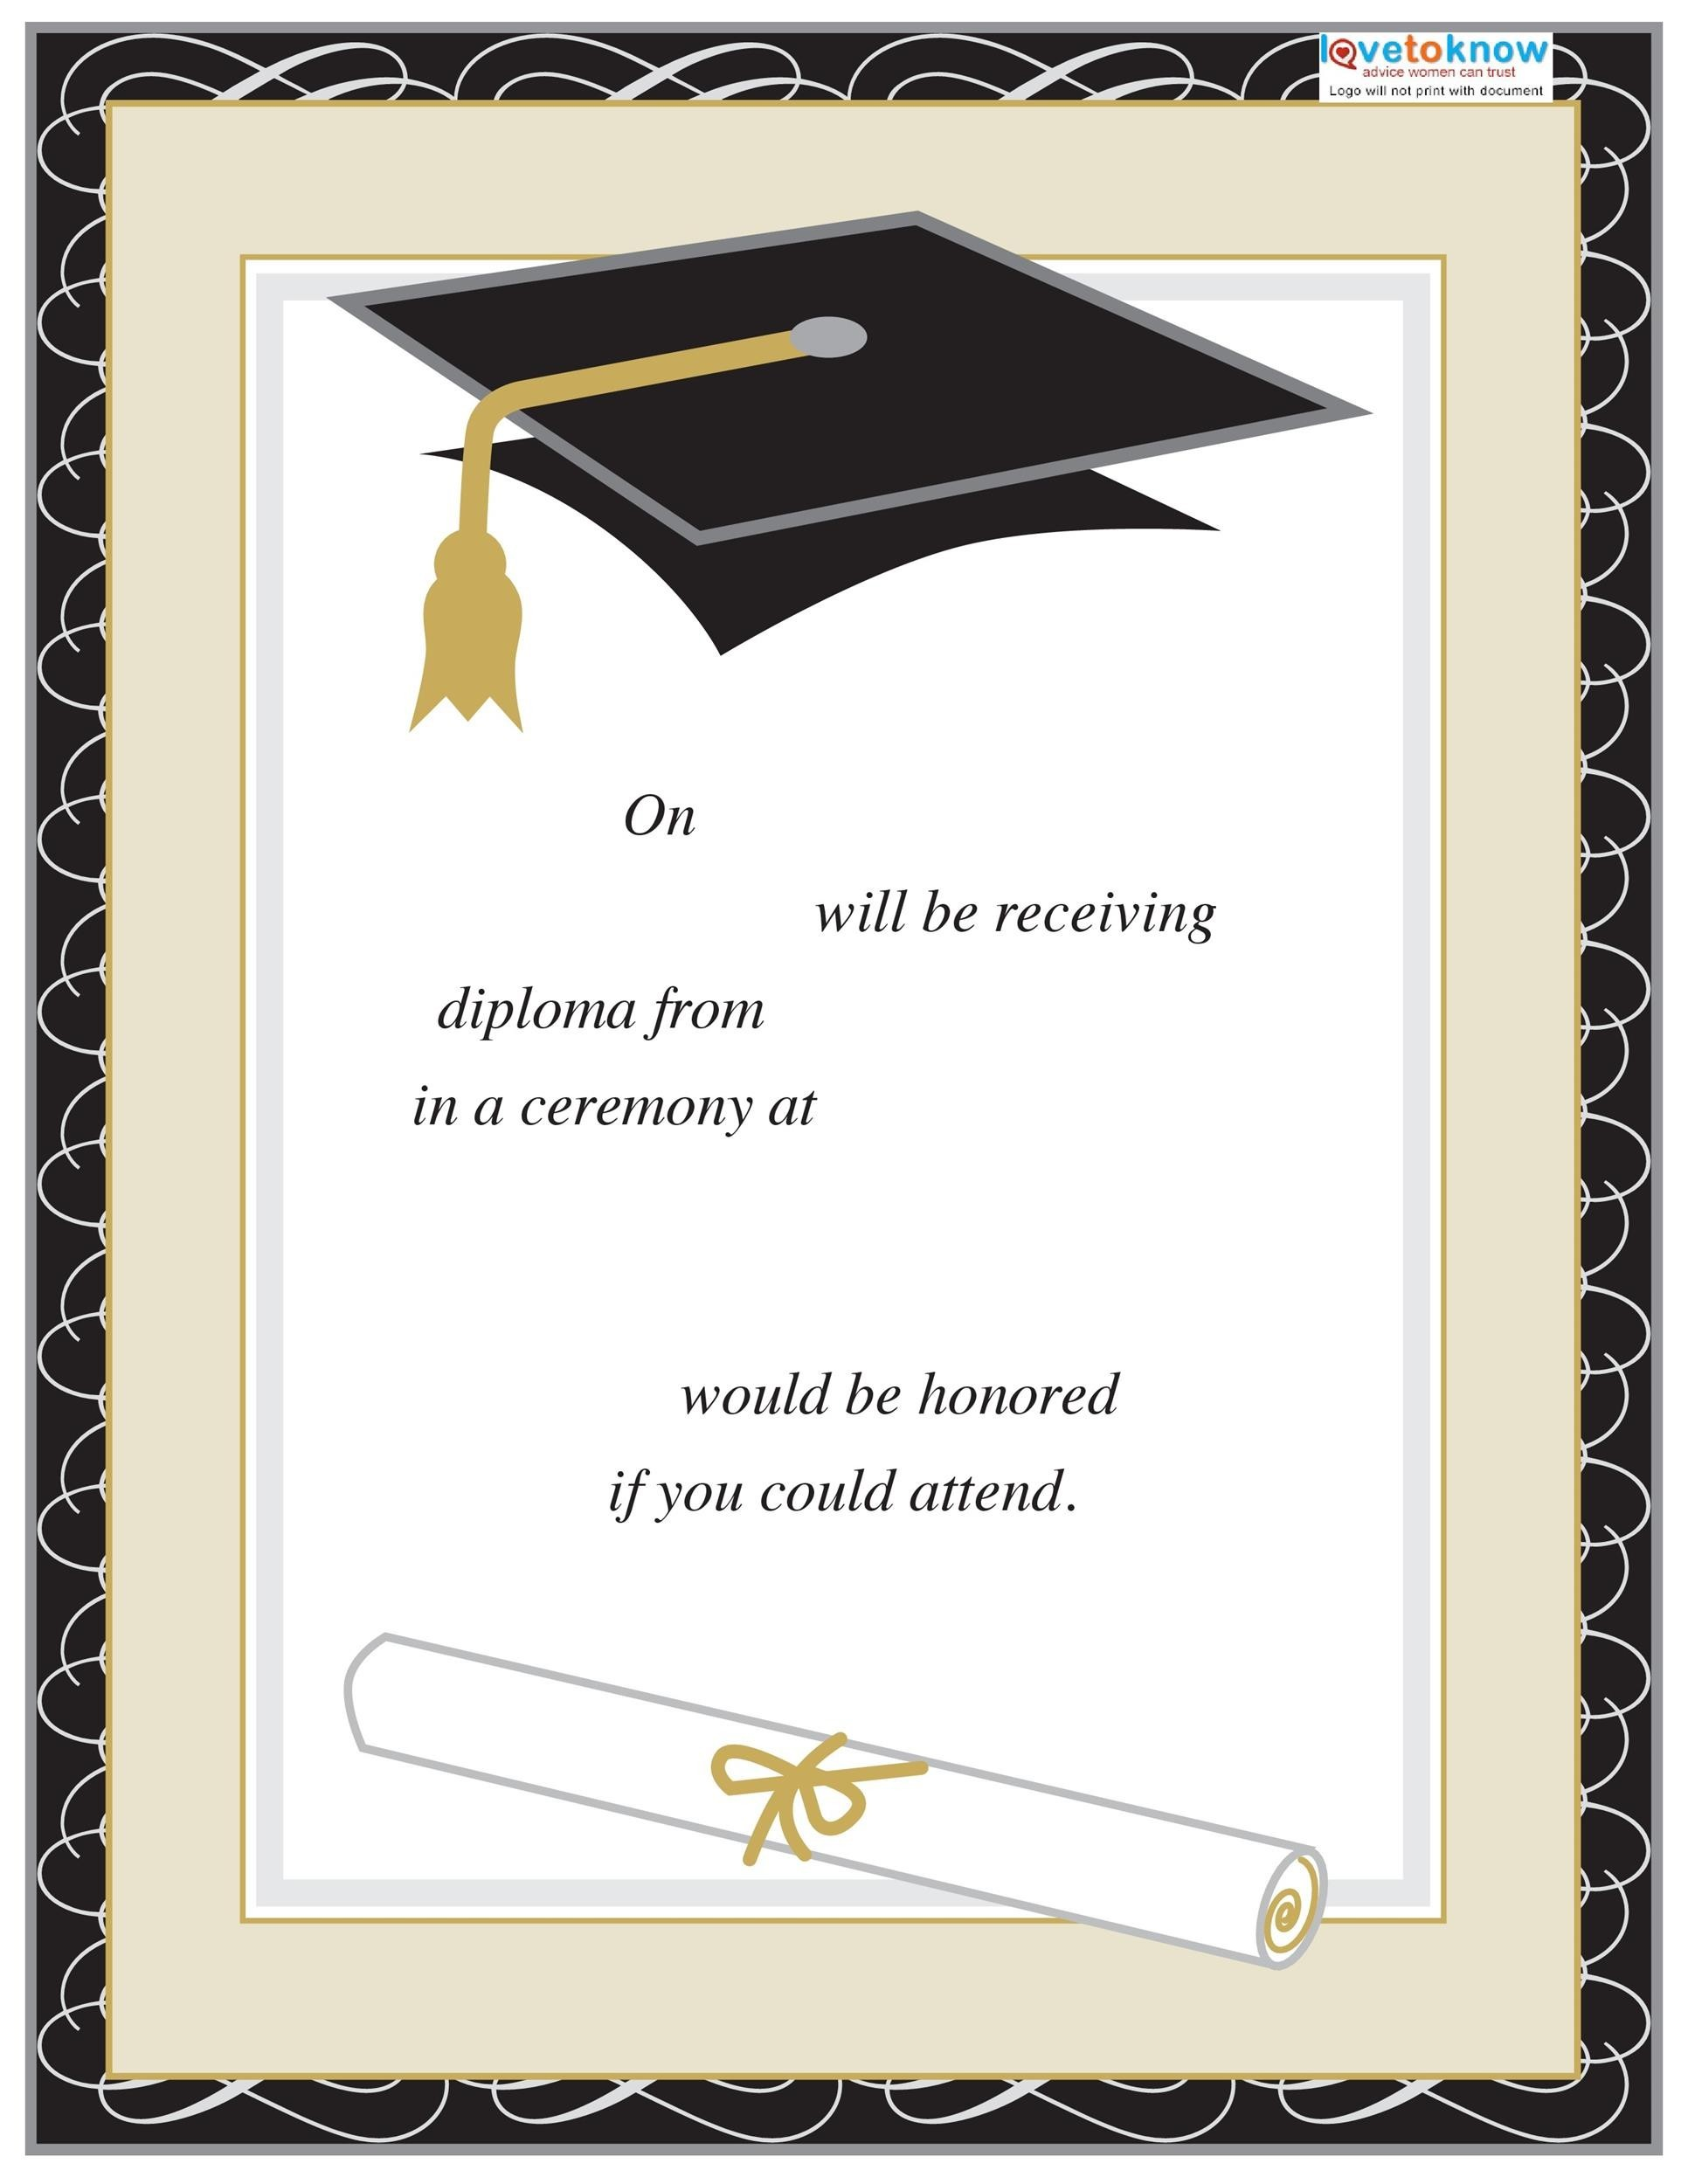 Graduation announcement wording ideas for high school and college graduates. Scroll through our grad announcement idea examples for wording inspiration.